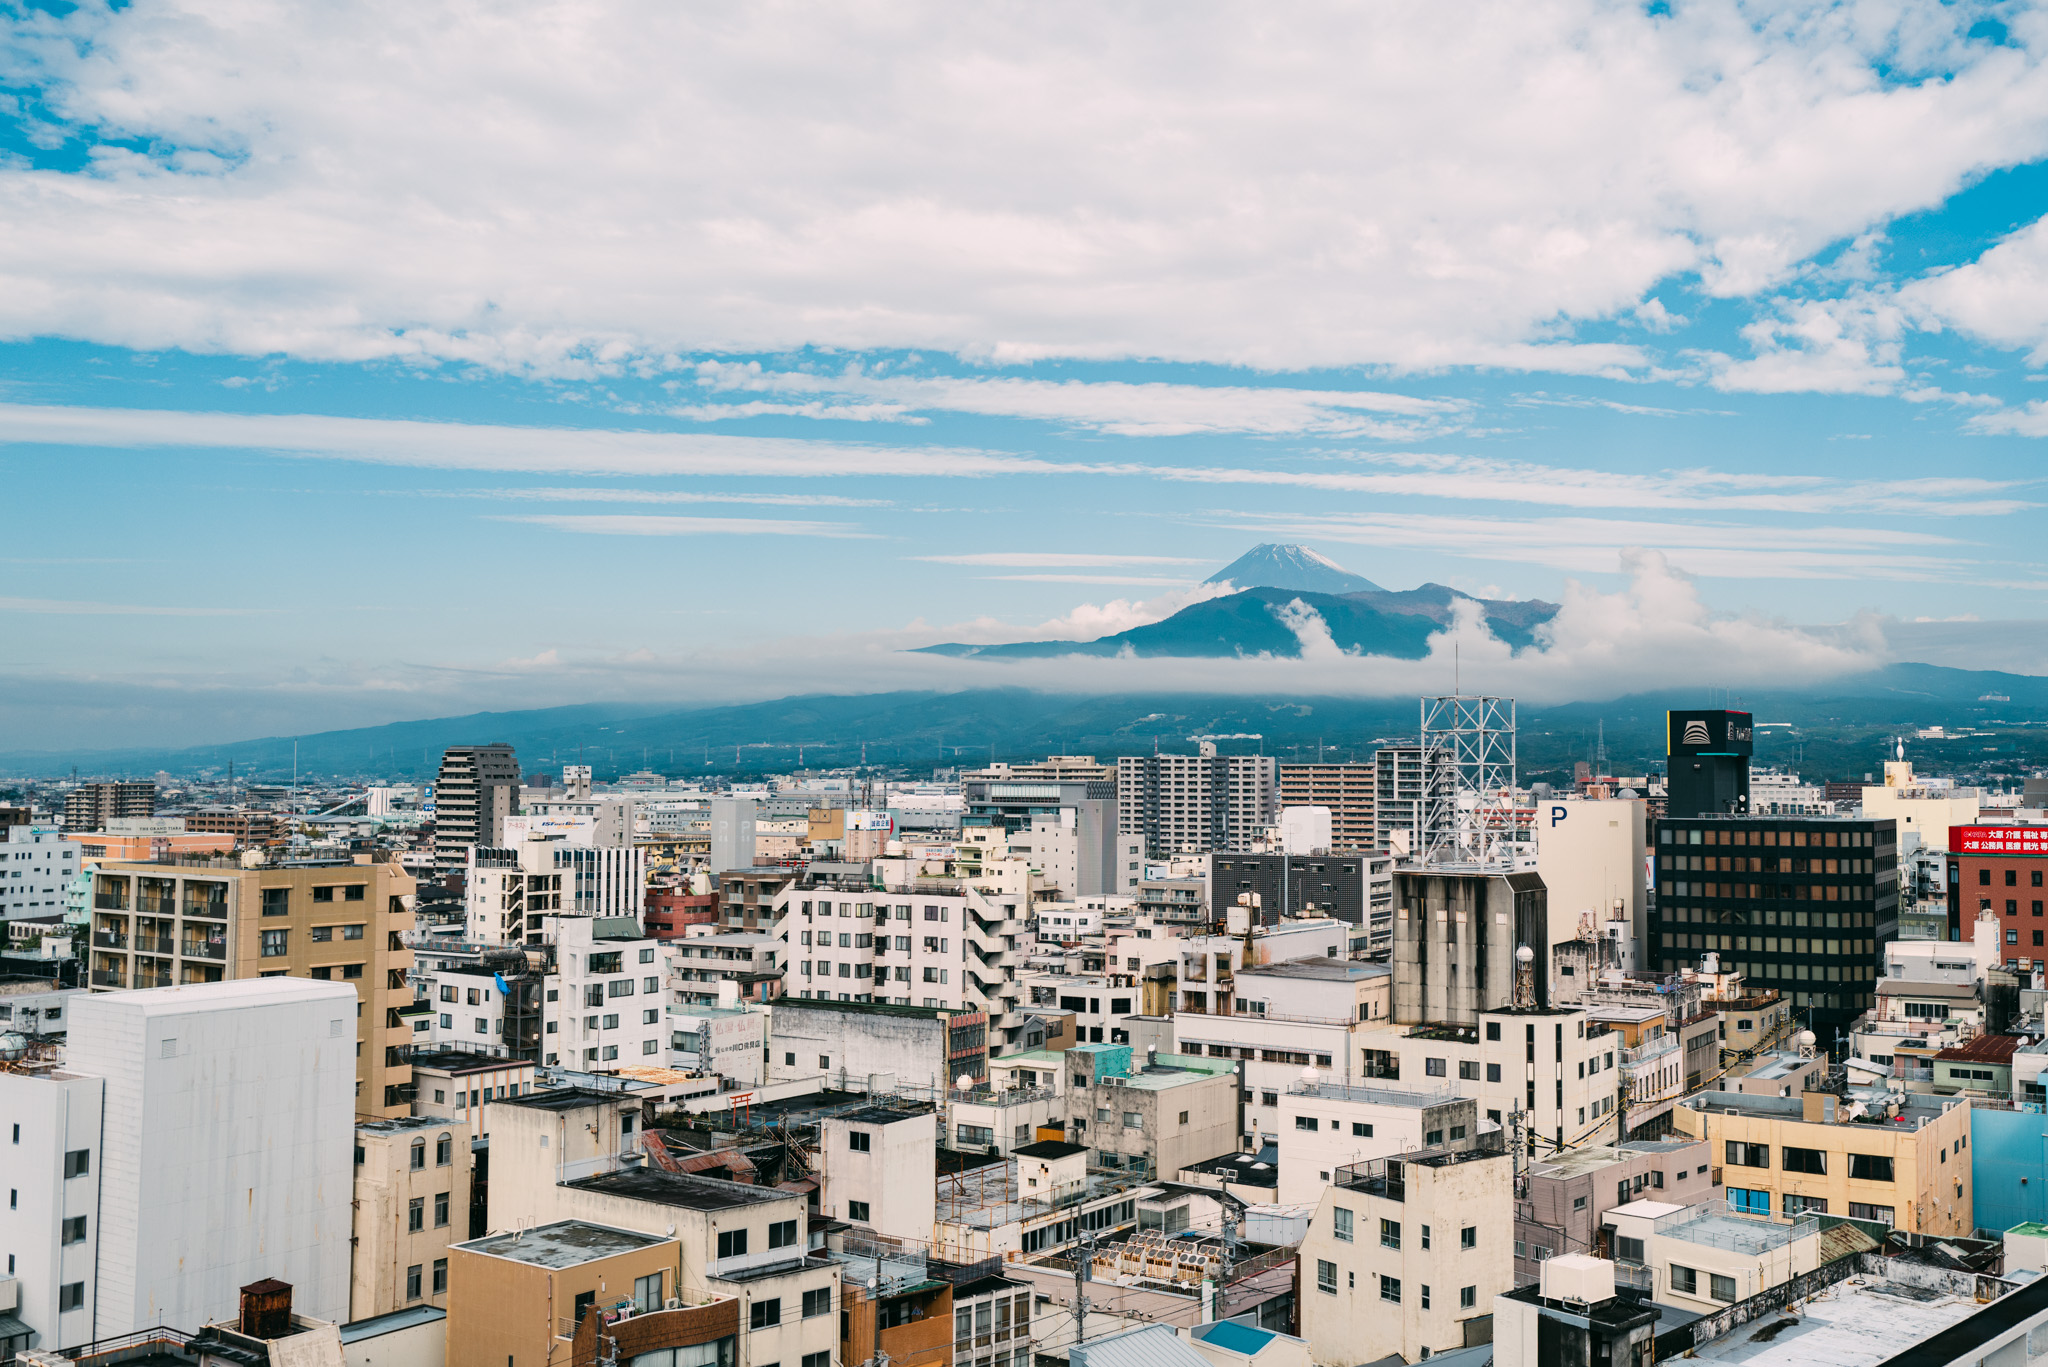 Mt. Fuji from a hotel in Numazu, Japan.